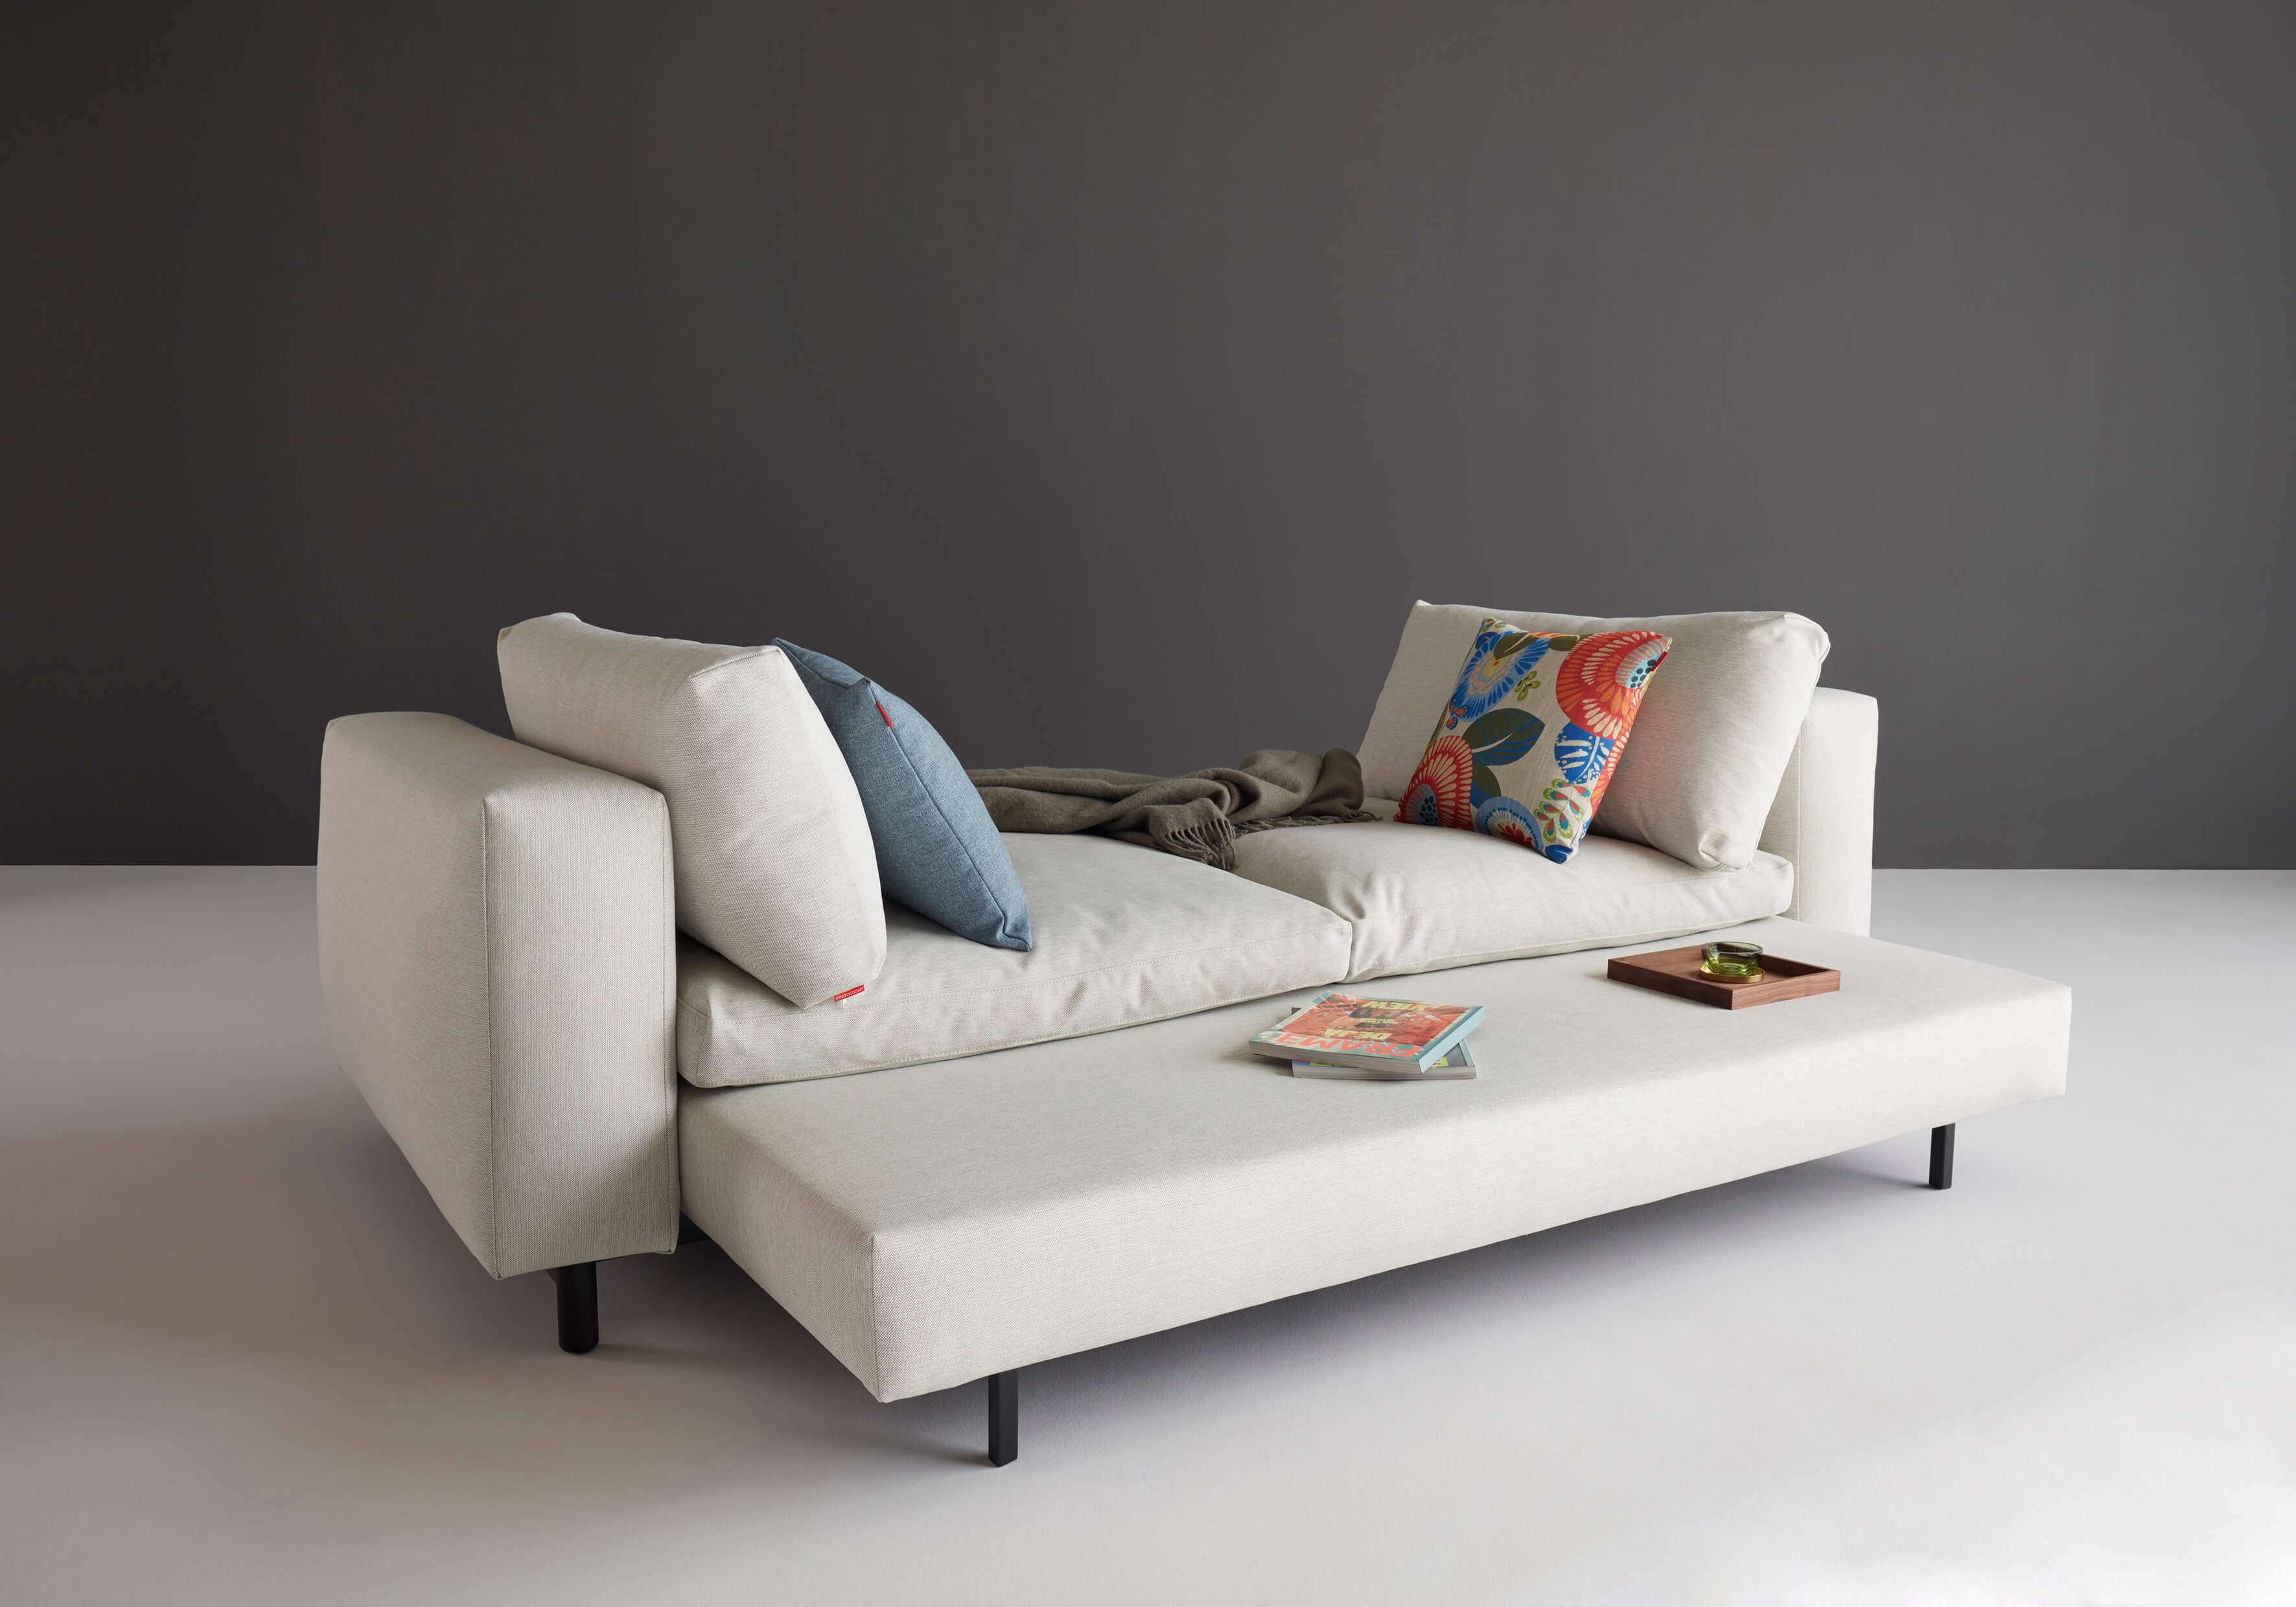 Trendy sofa bed unfolded view